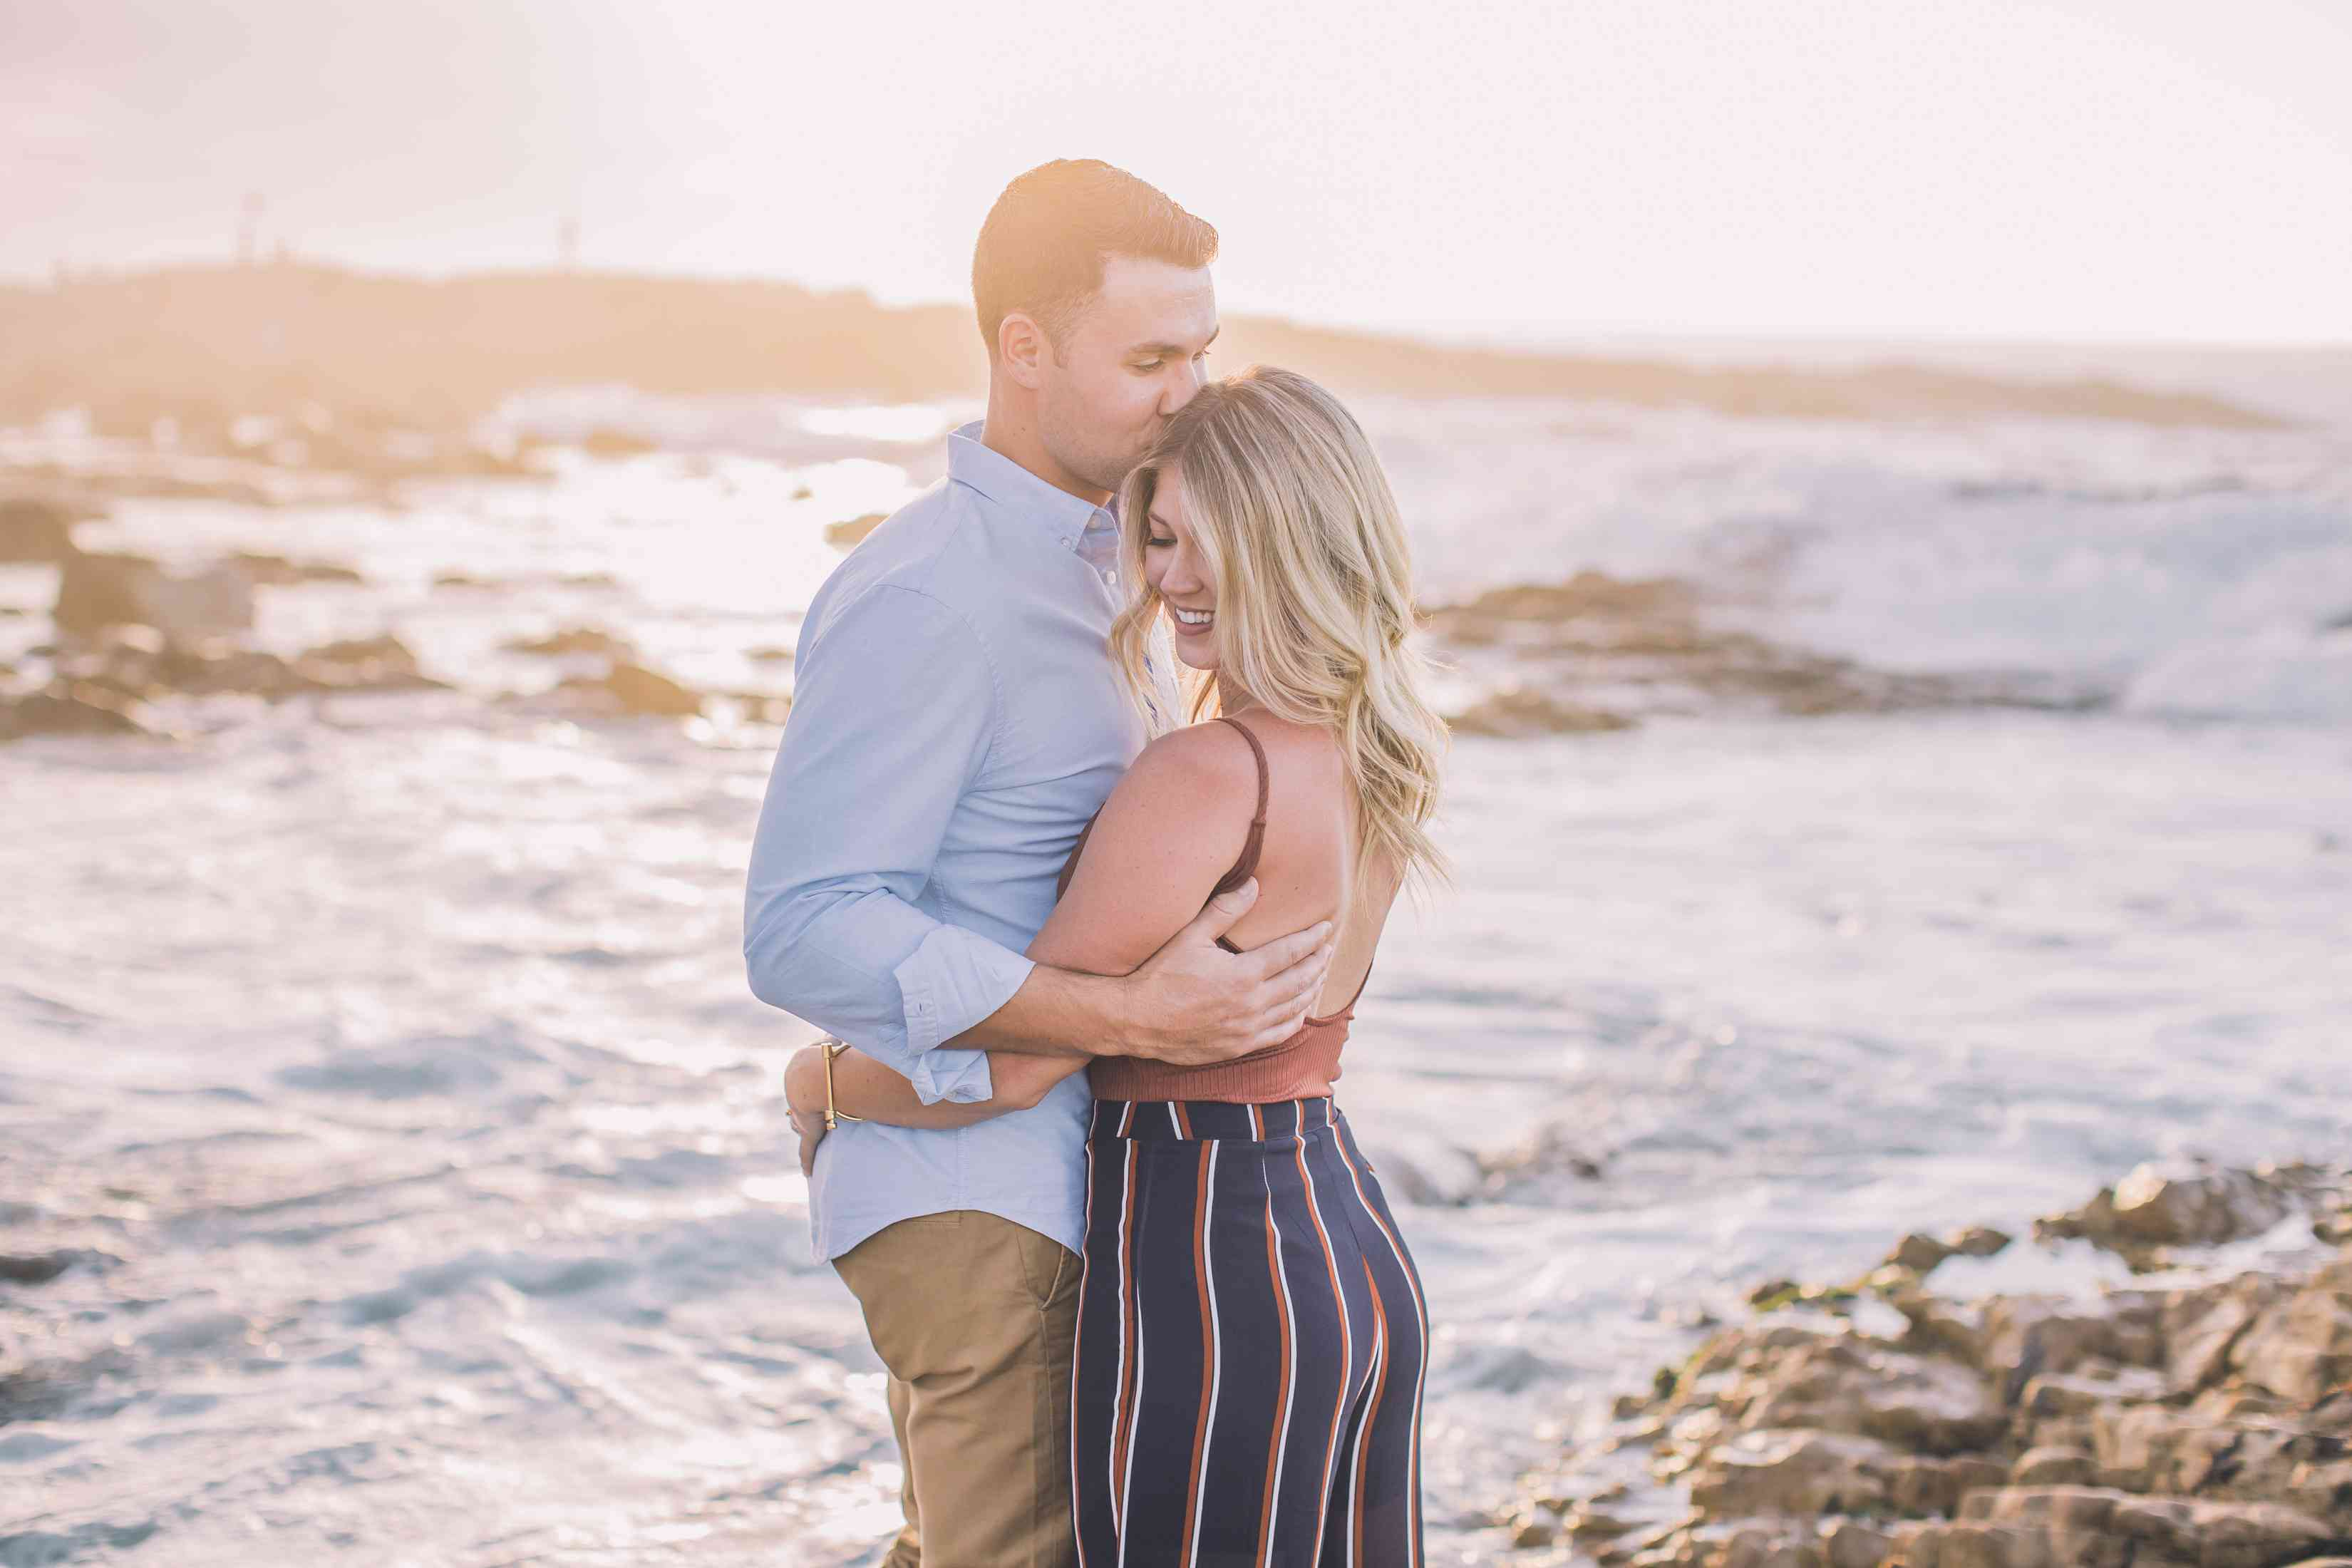 Couple hugging with ocean in the background